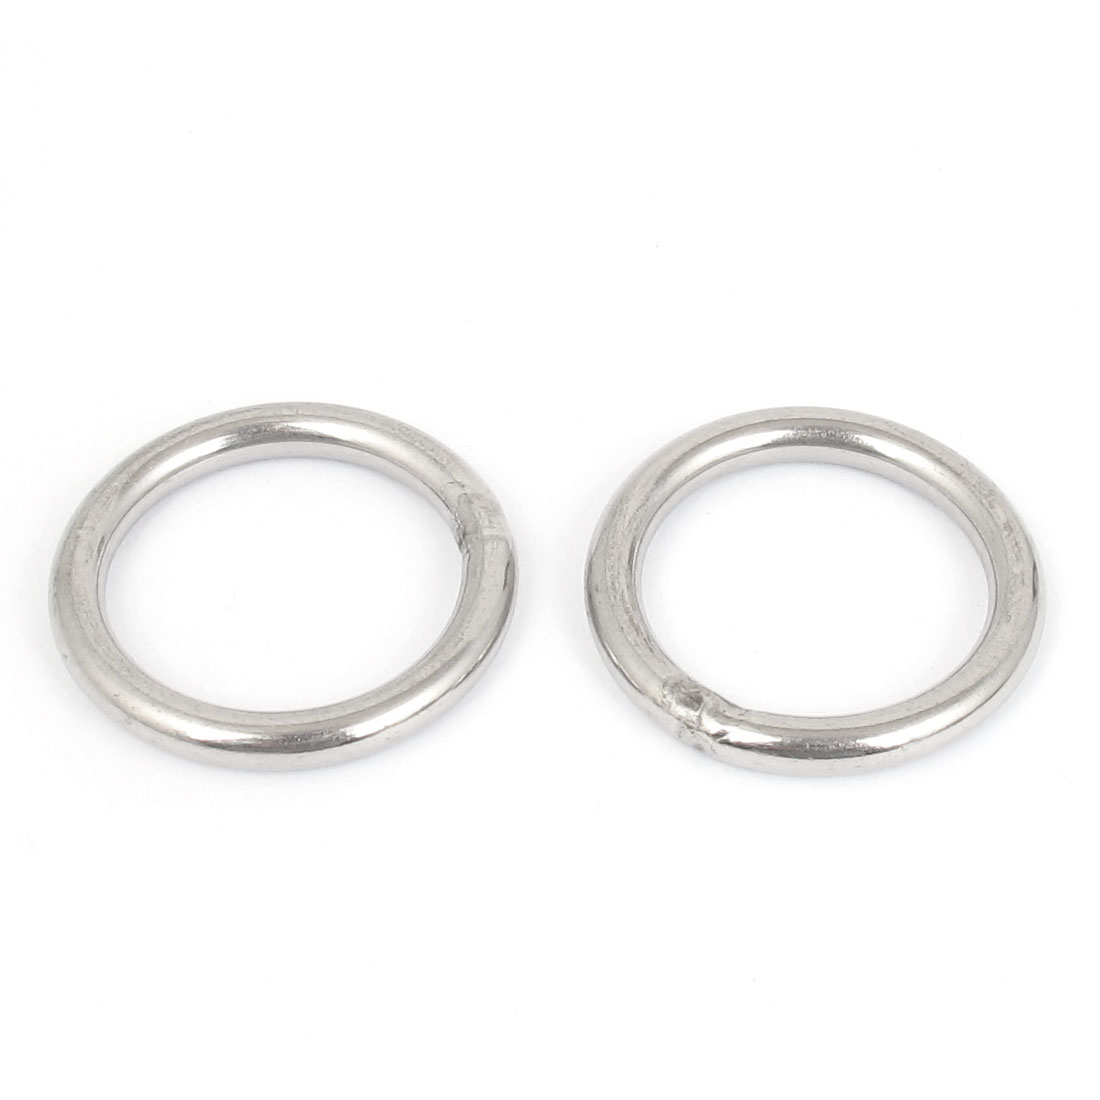 5mmx40mm Stainless Steel Welded O Ring 2pcs for Bags Key Chains Key Rings